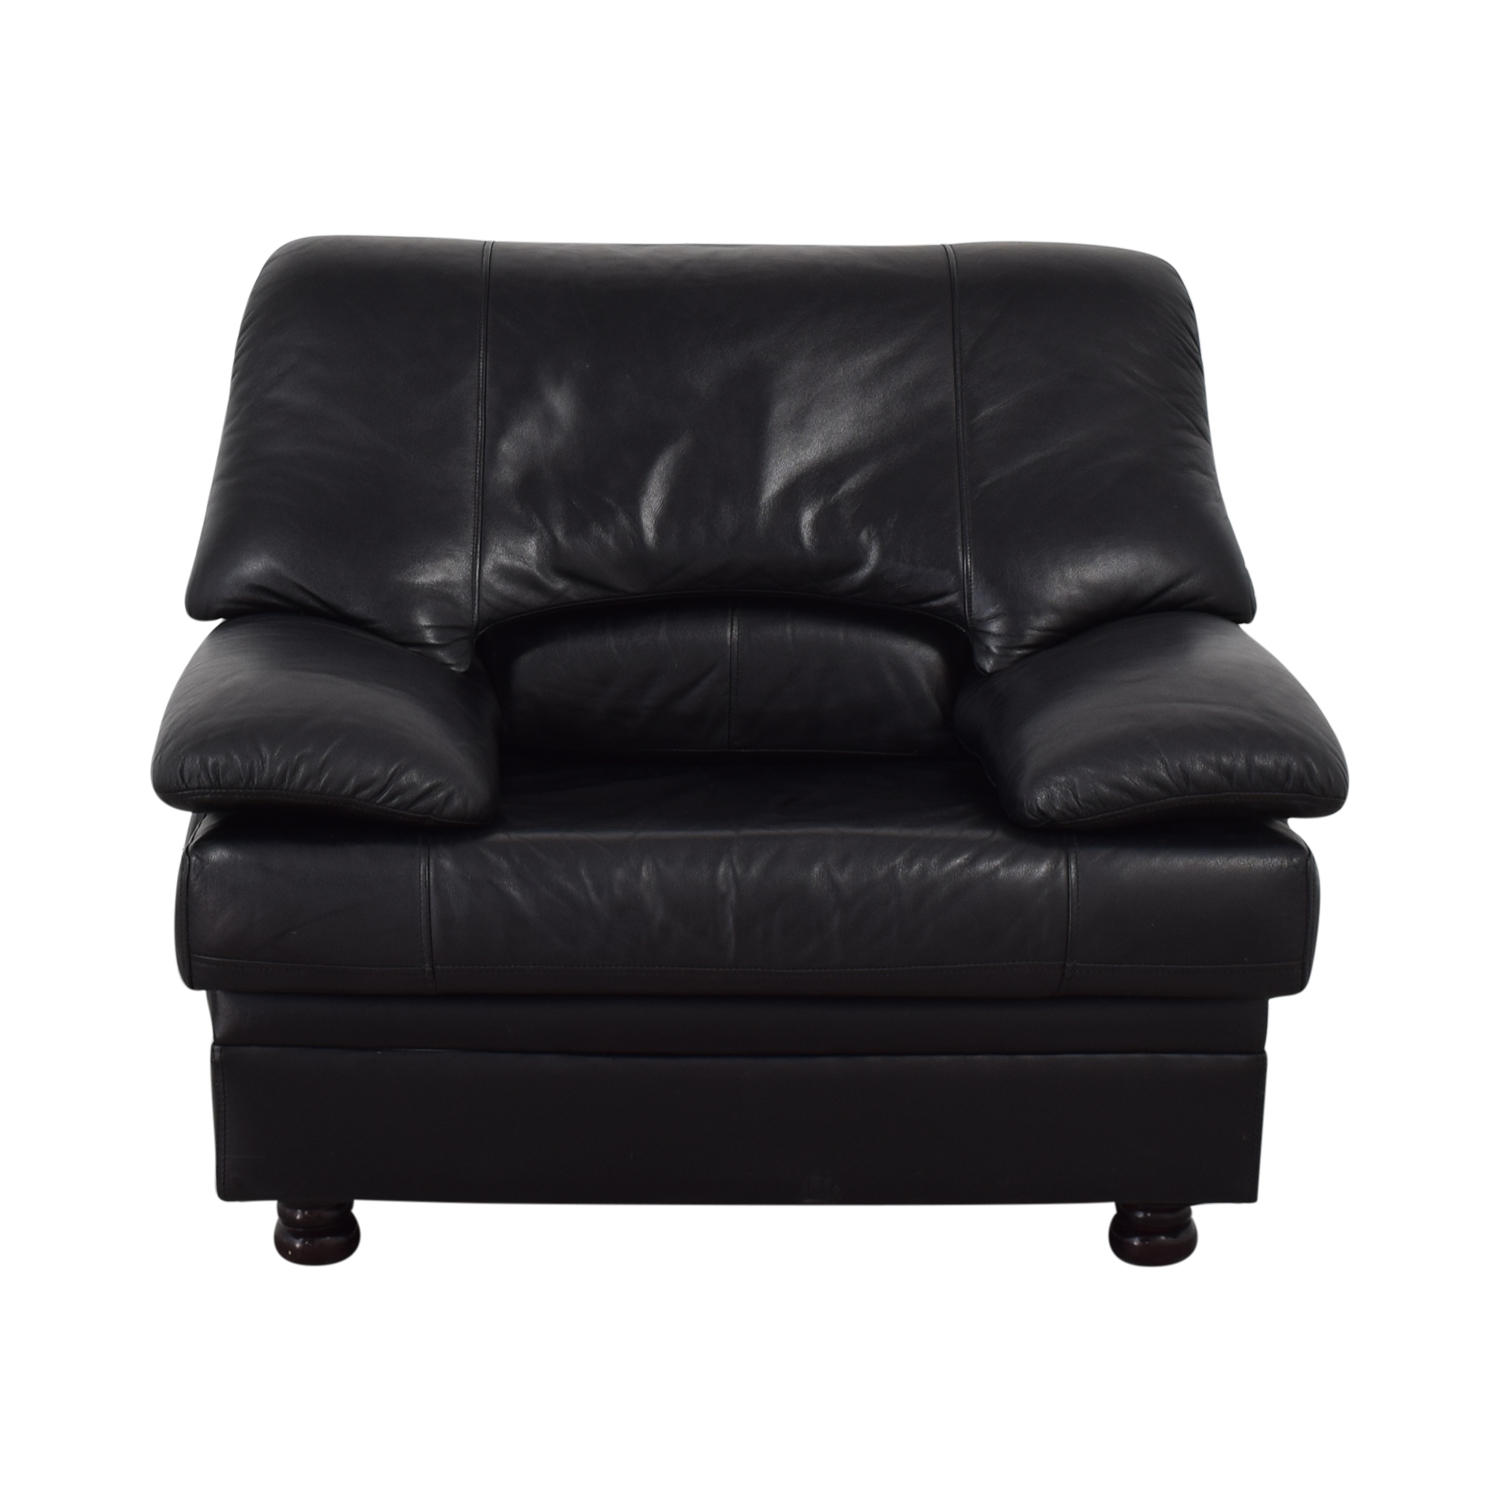 buy Black Oversized Accent Chair